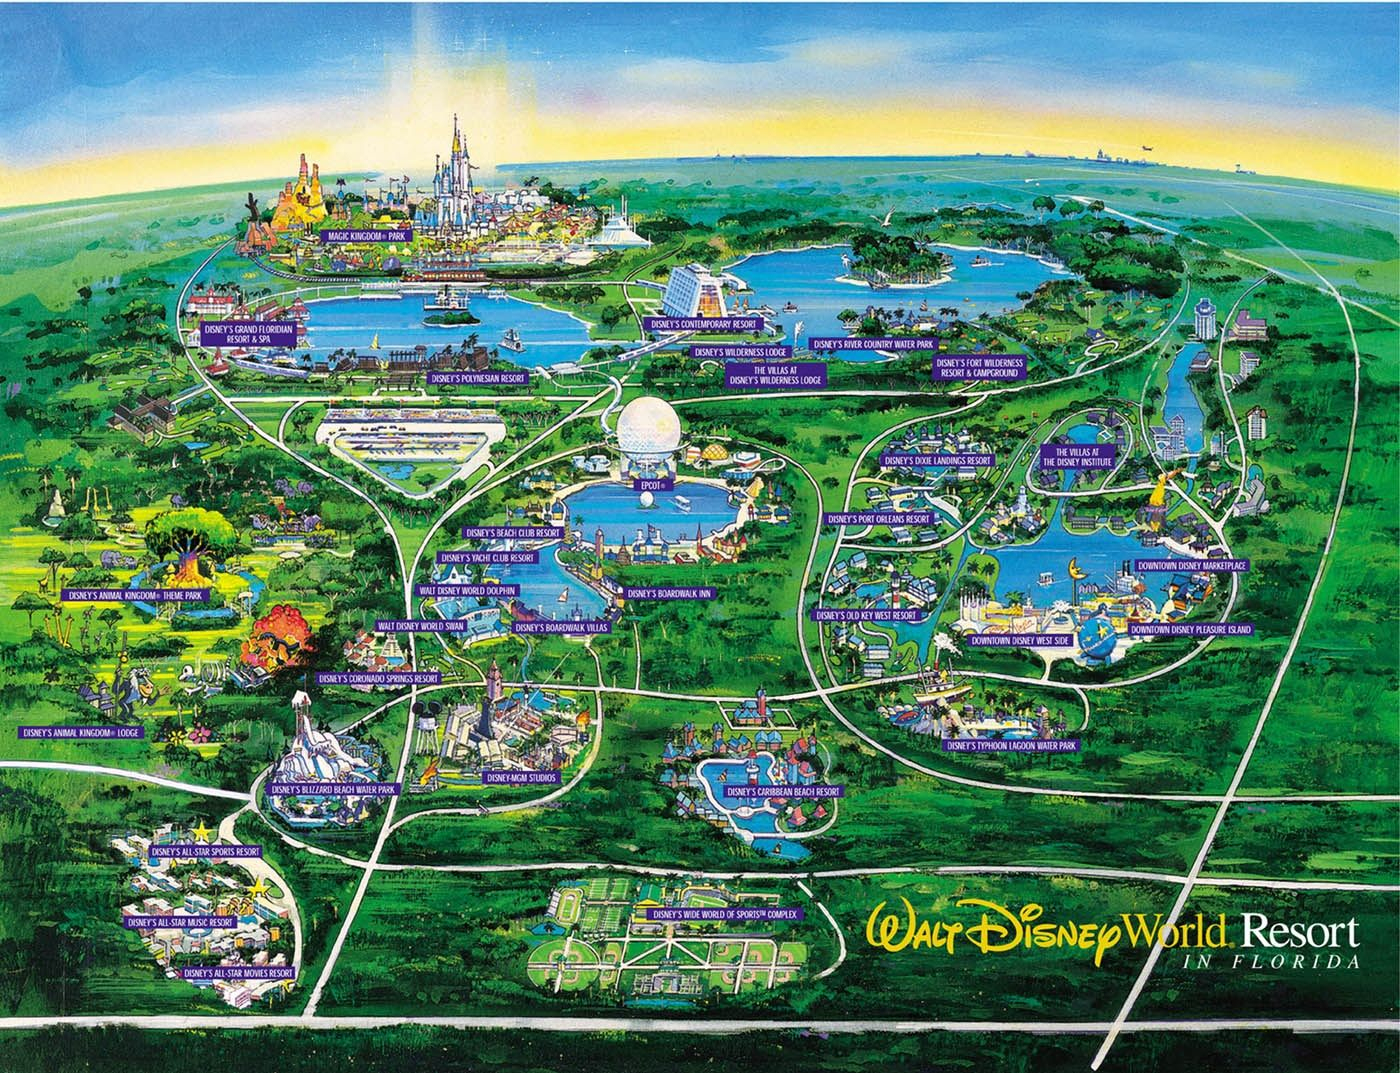 Images Of Disneyworld Map | Disney World Map See Map Details From - Map Of Disney World In Florida